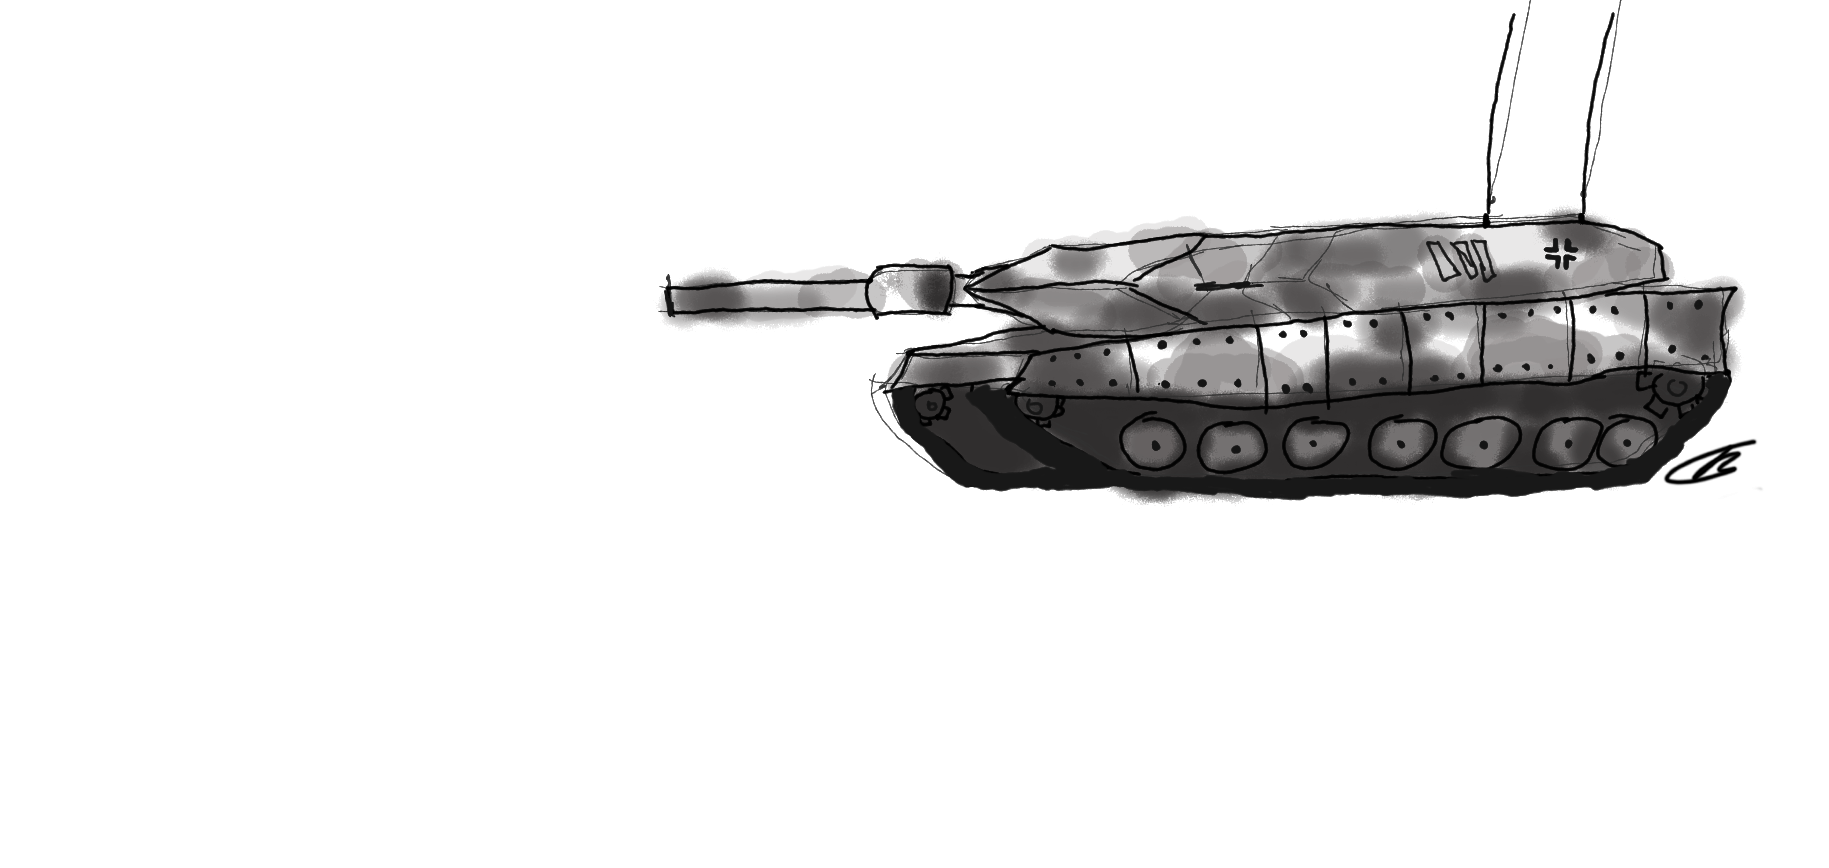 Military_tank_branded.png.b82ce9b9f4a6a99cae0a5aee9e1bf856.png